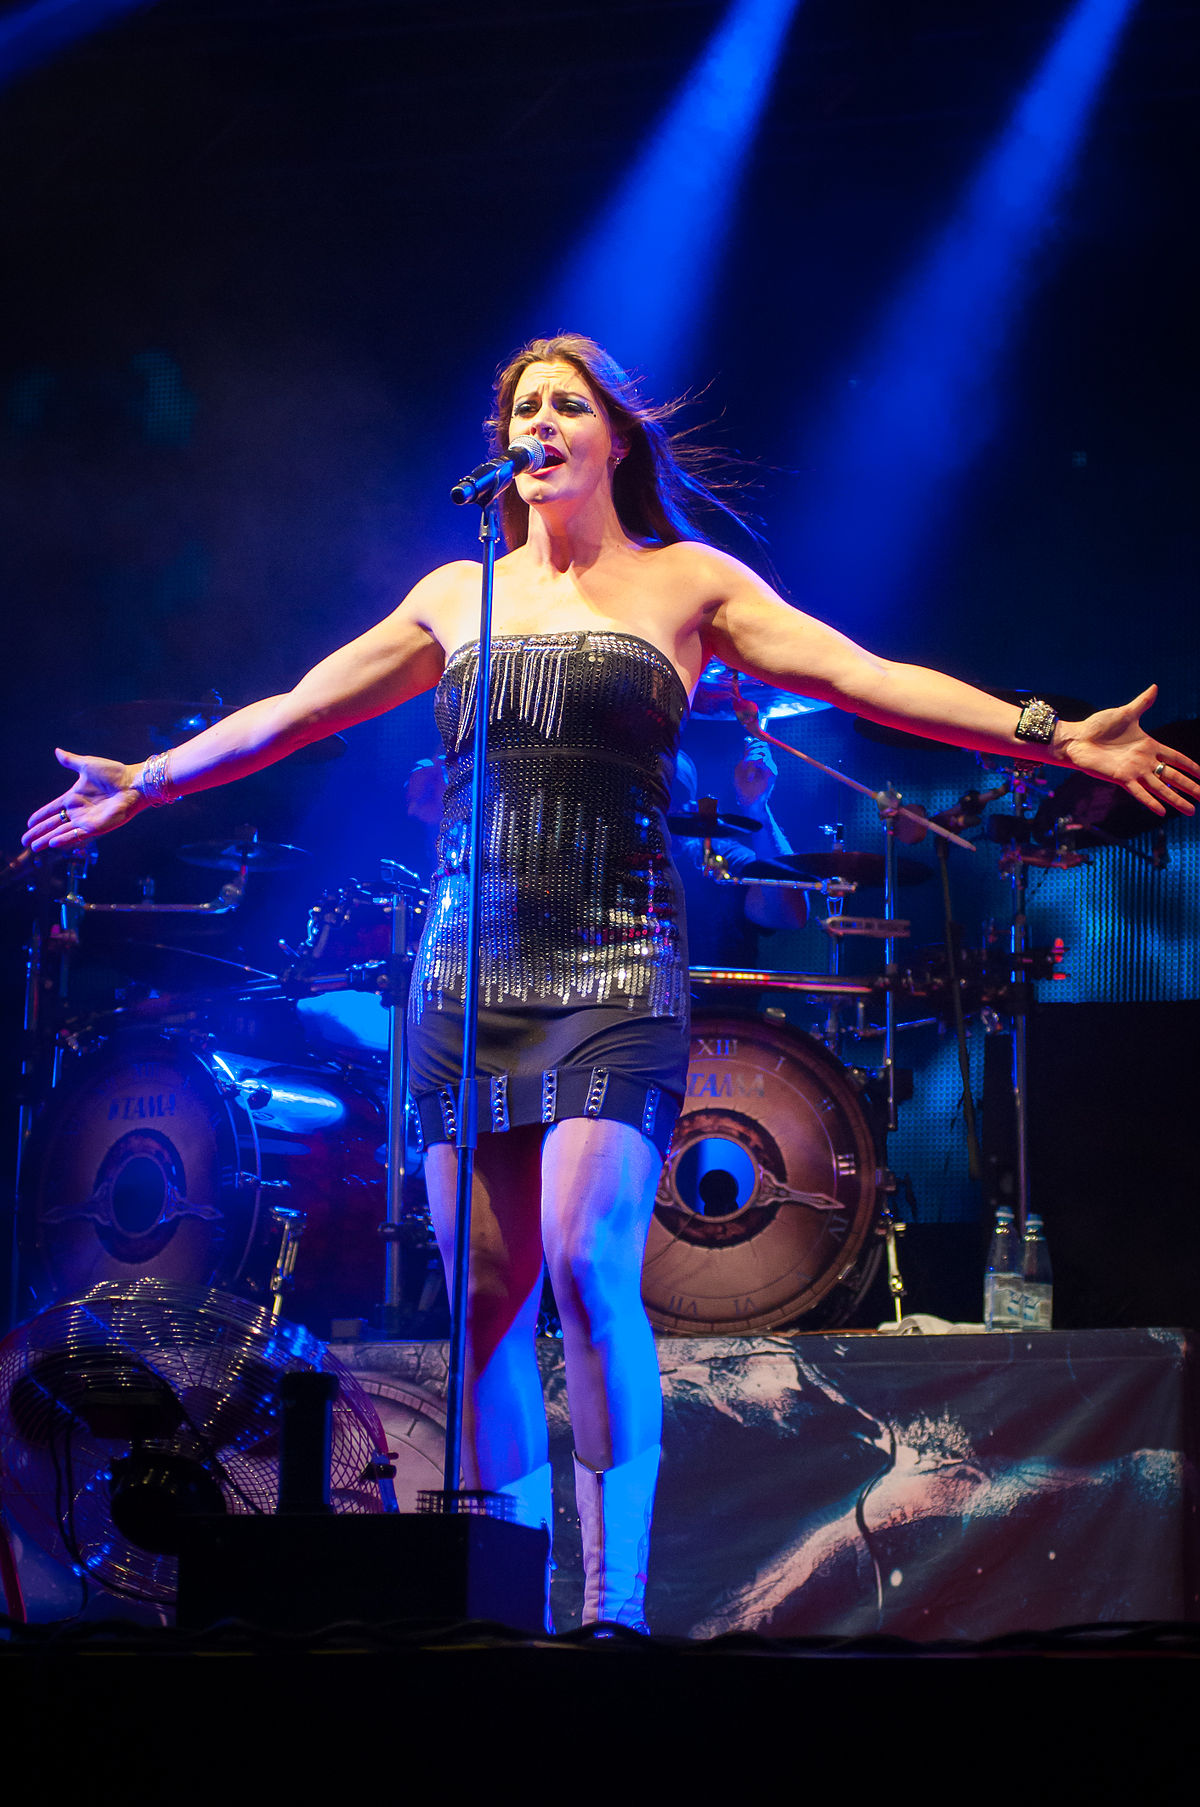 Floor jansen wikipedia bahasa indonesia ensiklopedia bebas for Floor wikipedia